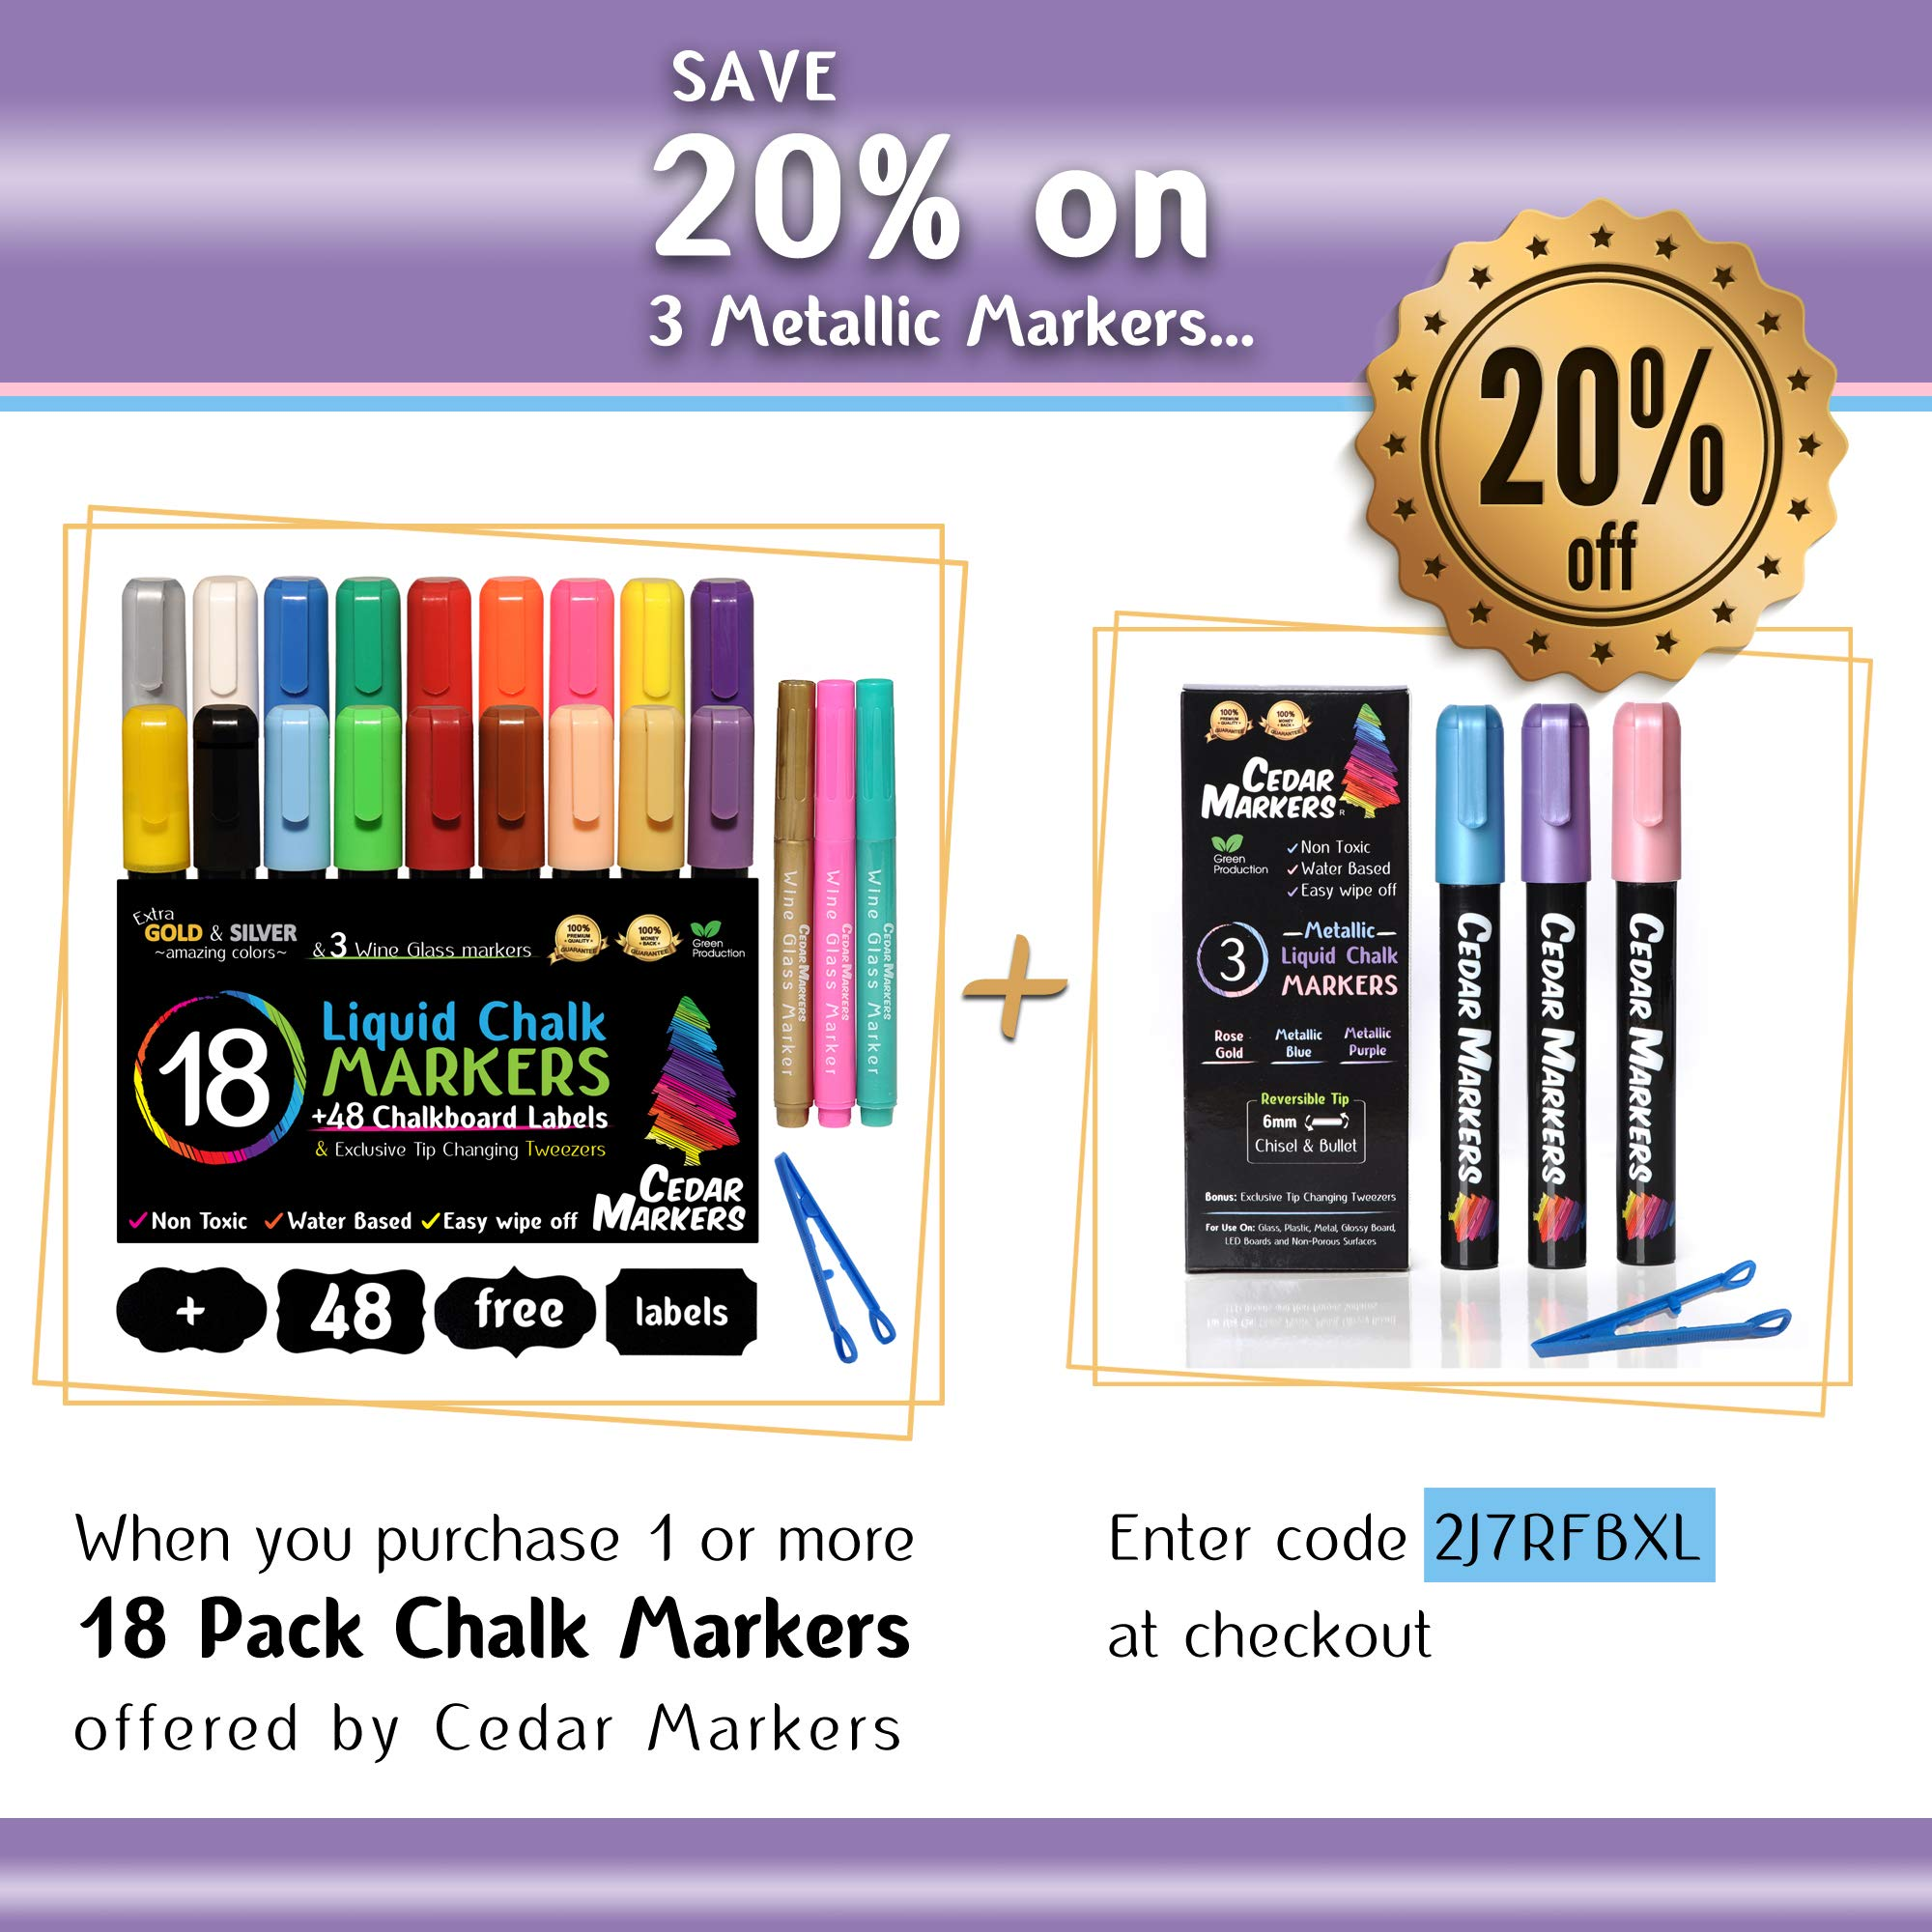 Cedar Markers Liquid Chalk Markers - 18 Pack Chalkboard Markers for Chalkboards. Reversible Bullet And Chisel Tip. Chalk Board Marker paint Water Based Non-Toxic. by Cedar Markers (Image #6)